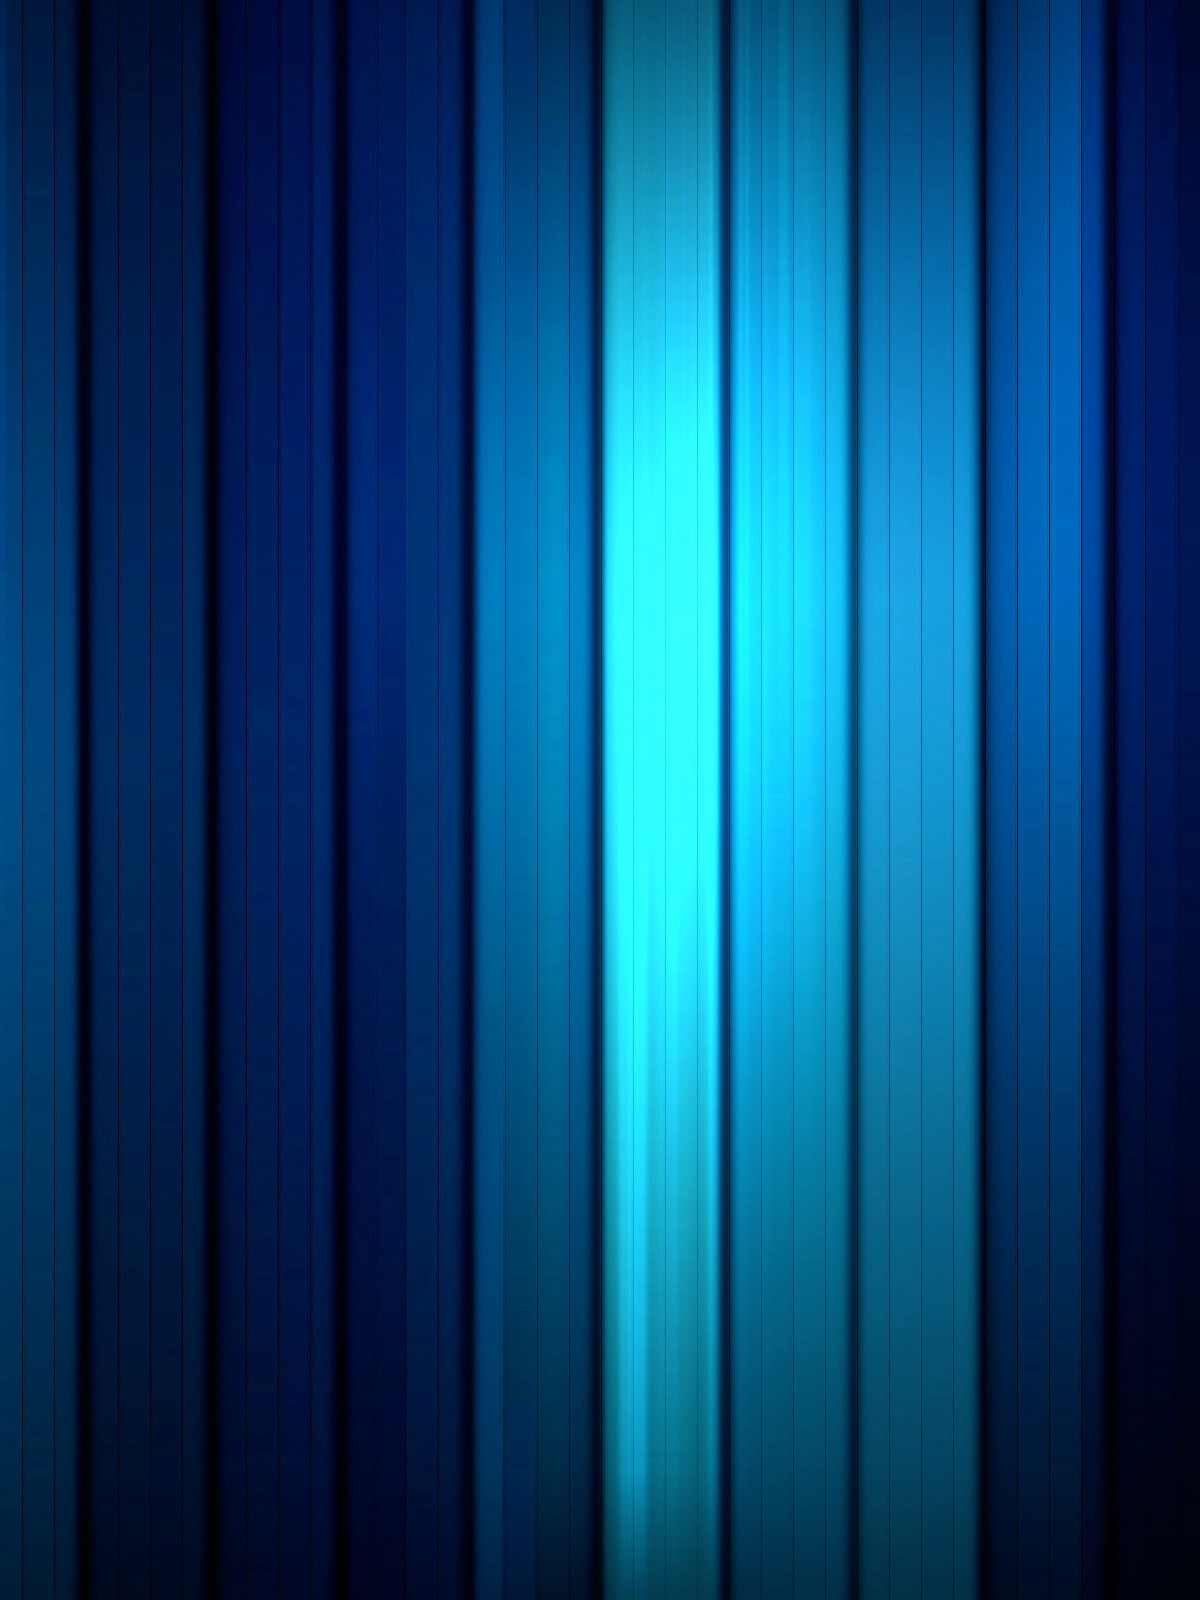 Striped Texture Mobile Wallpaper Mobiles Wall